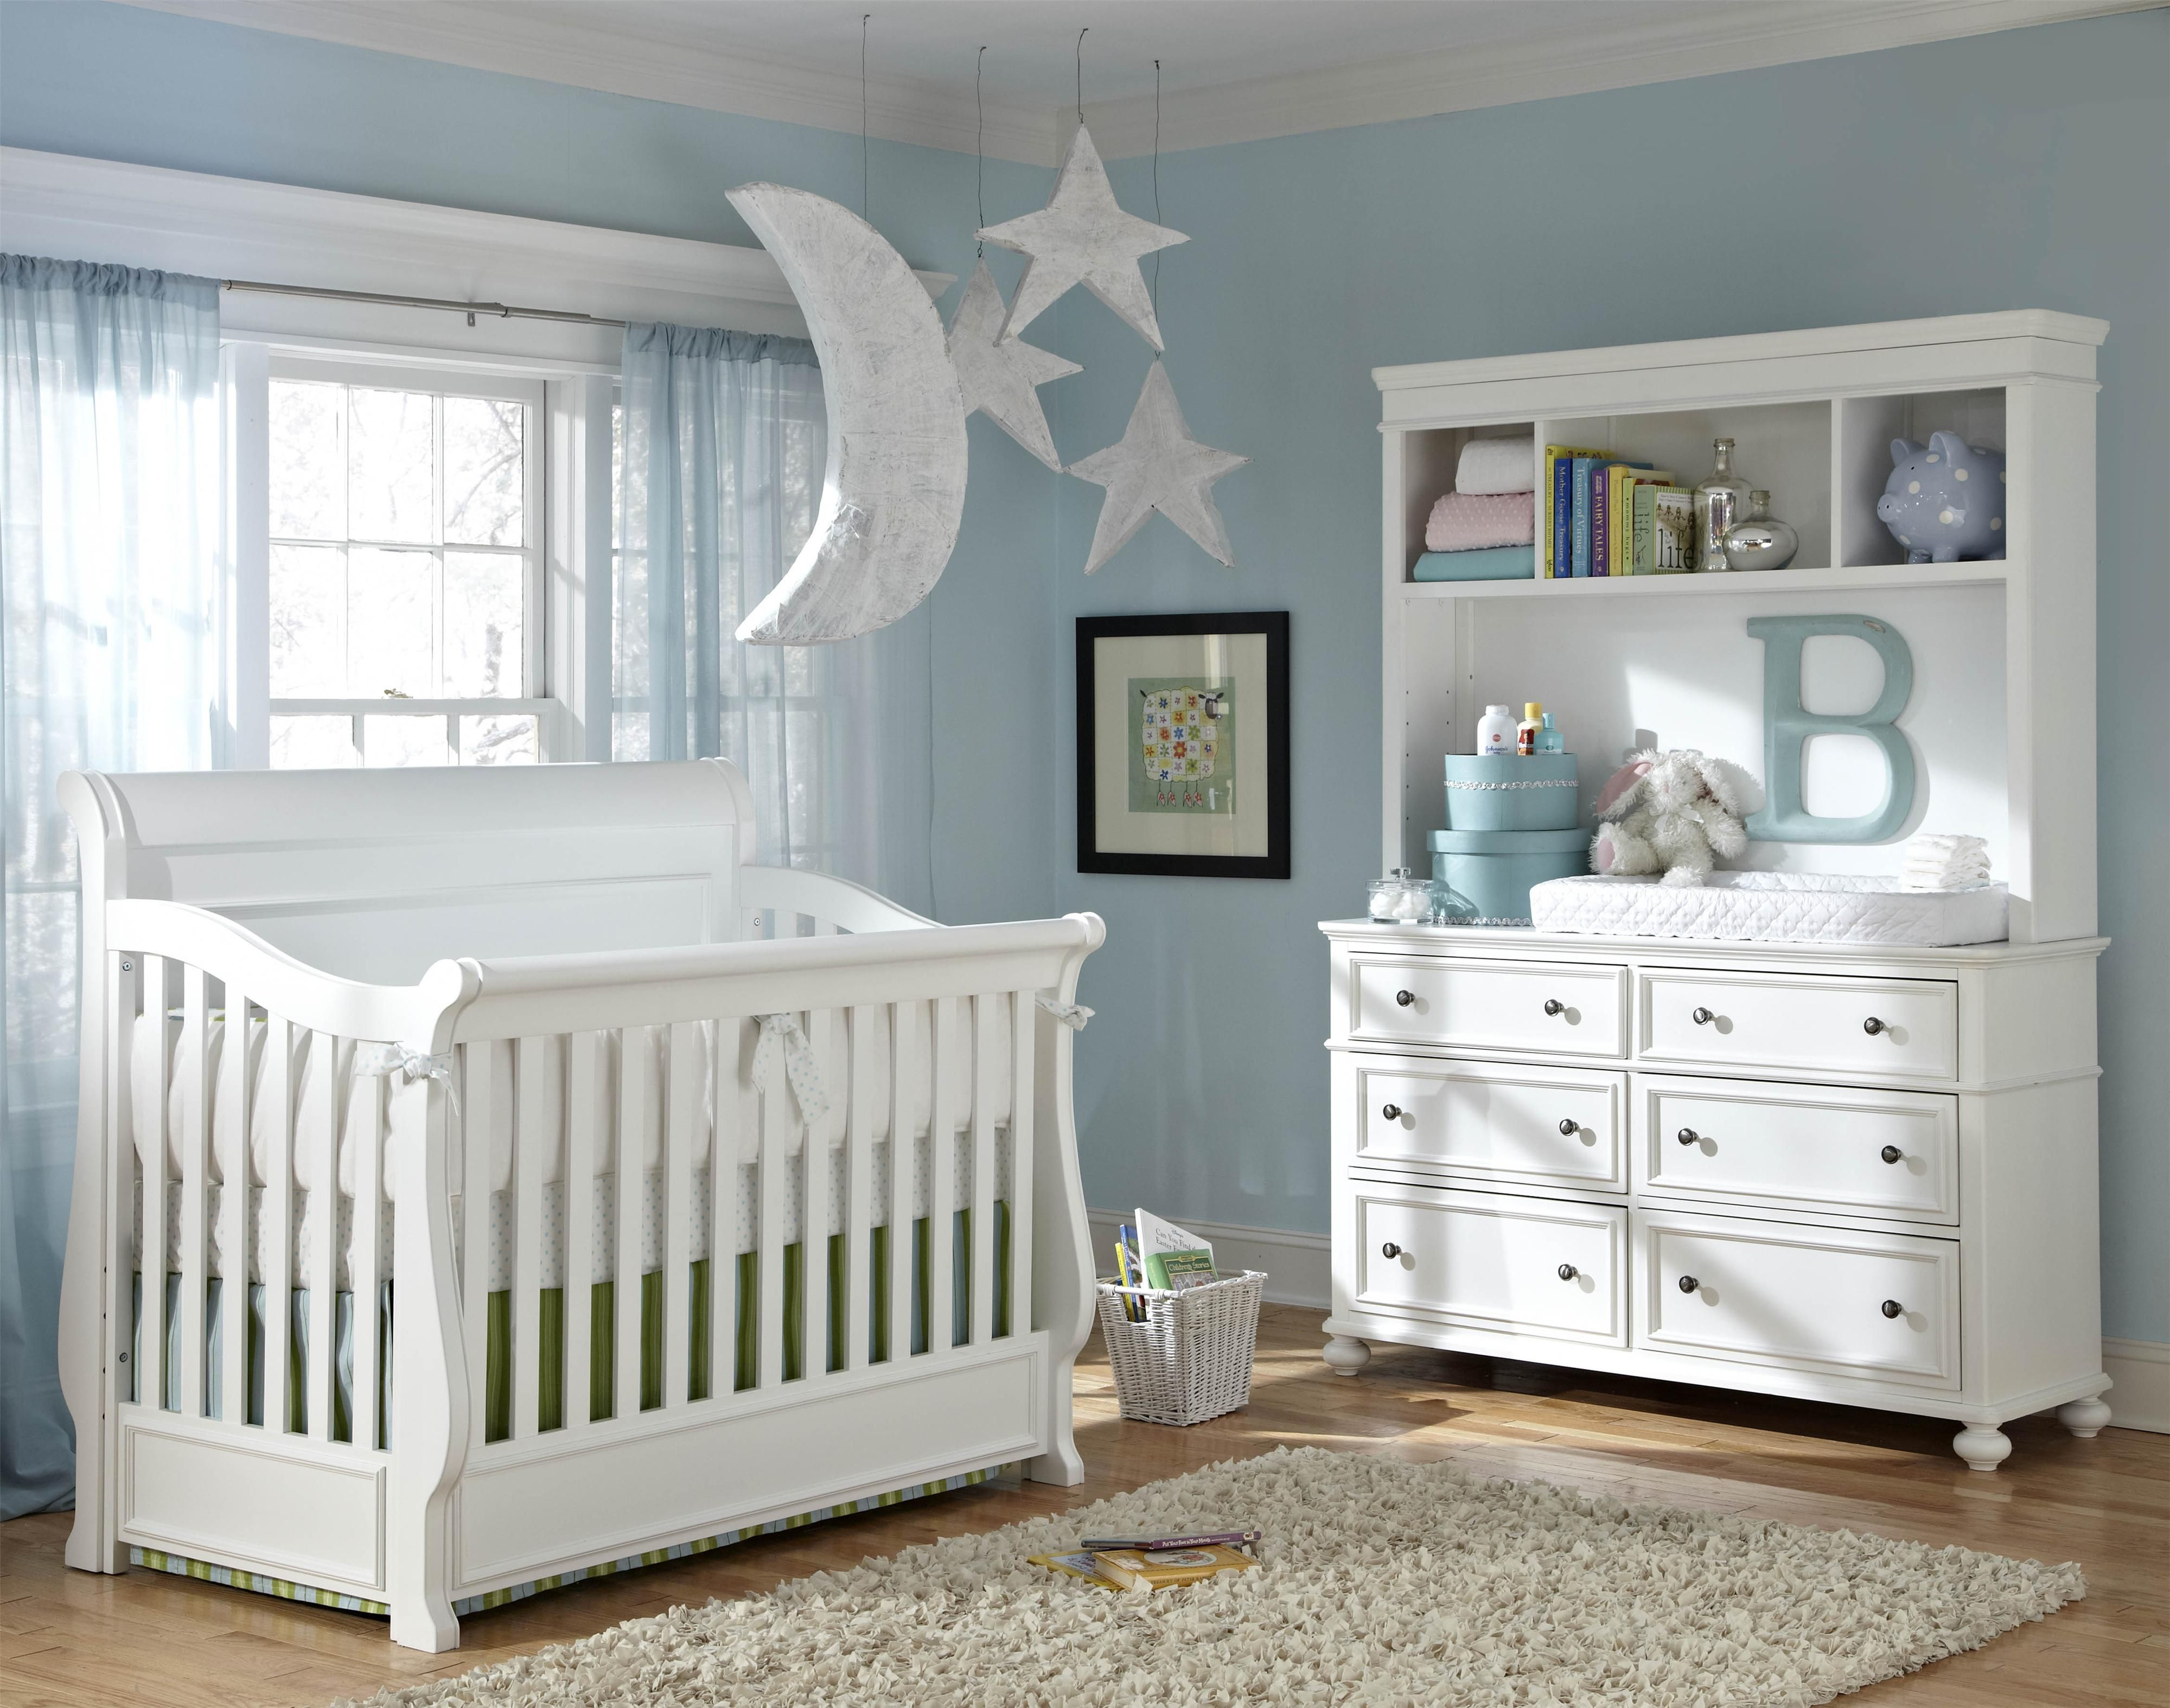 Sweet Dreams To Be Had In This Classy Nursery All White Is So Calming And Let S You Pick The Accent Best Baby